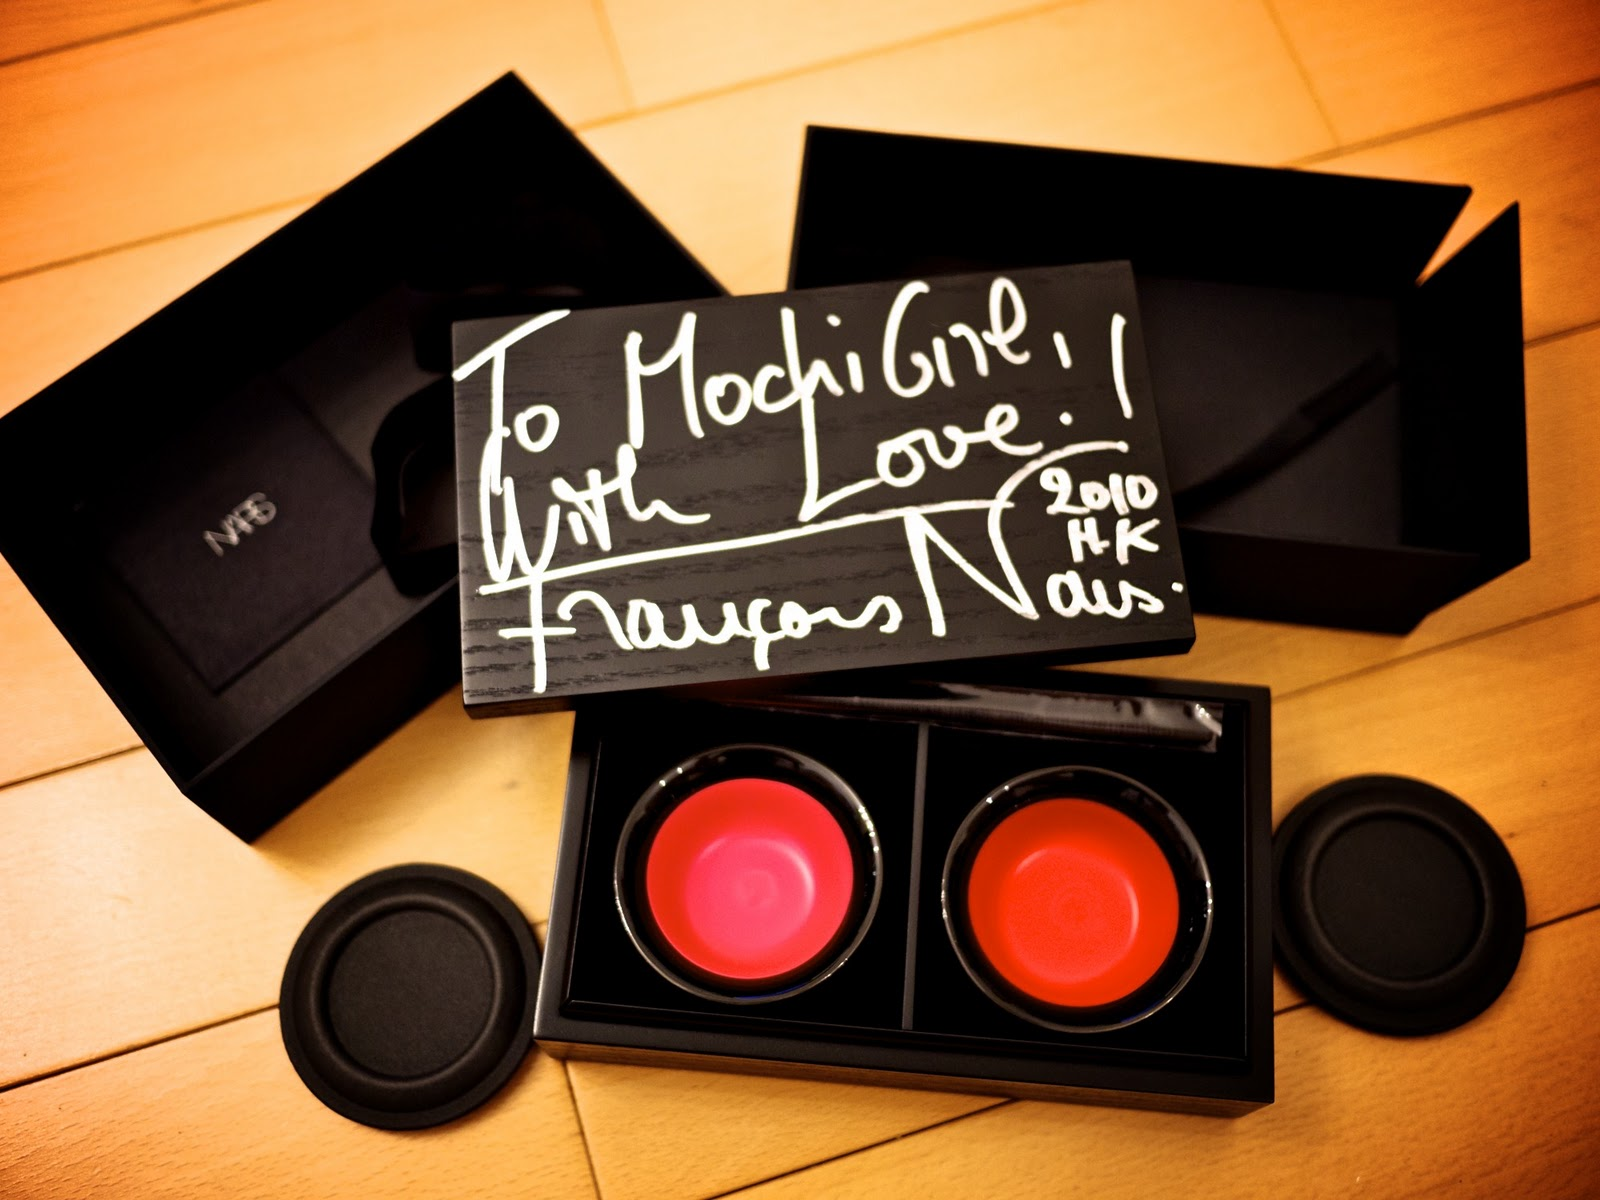 NARS Bento Box Sets